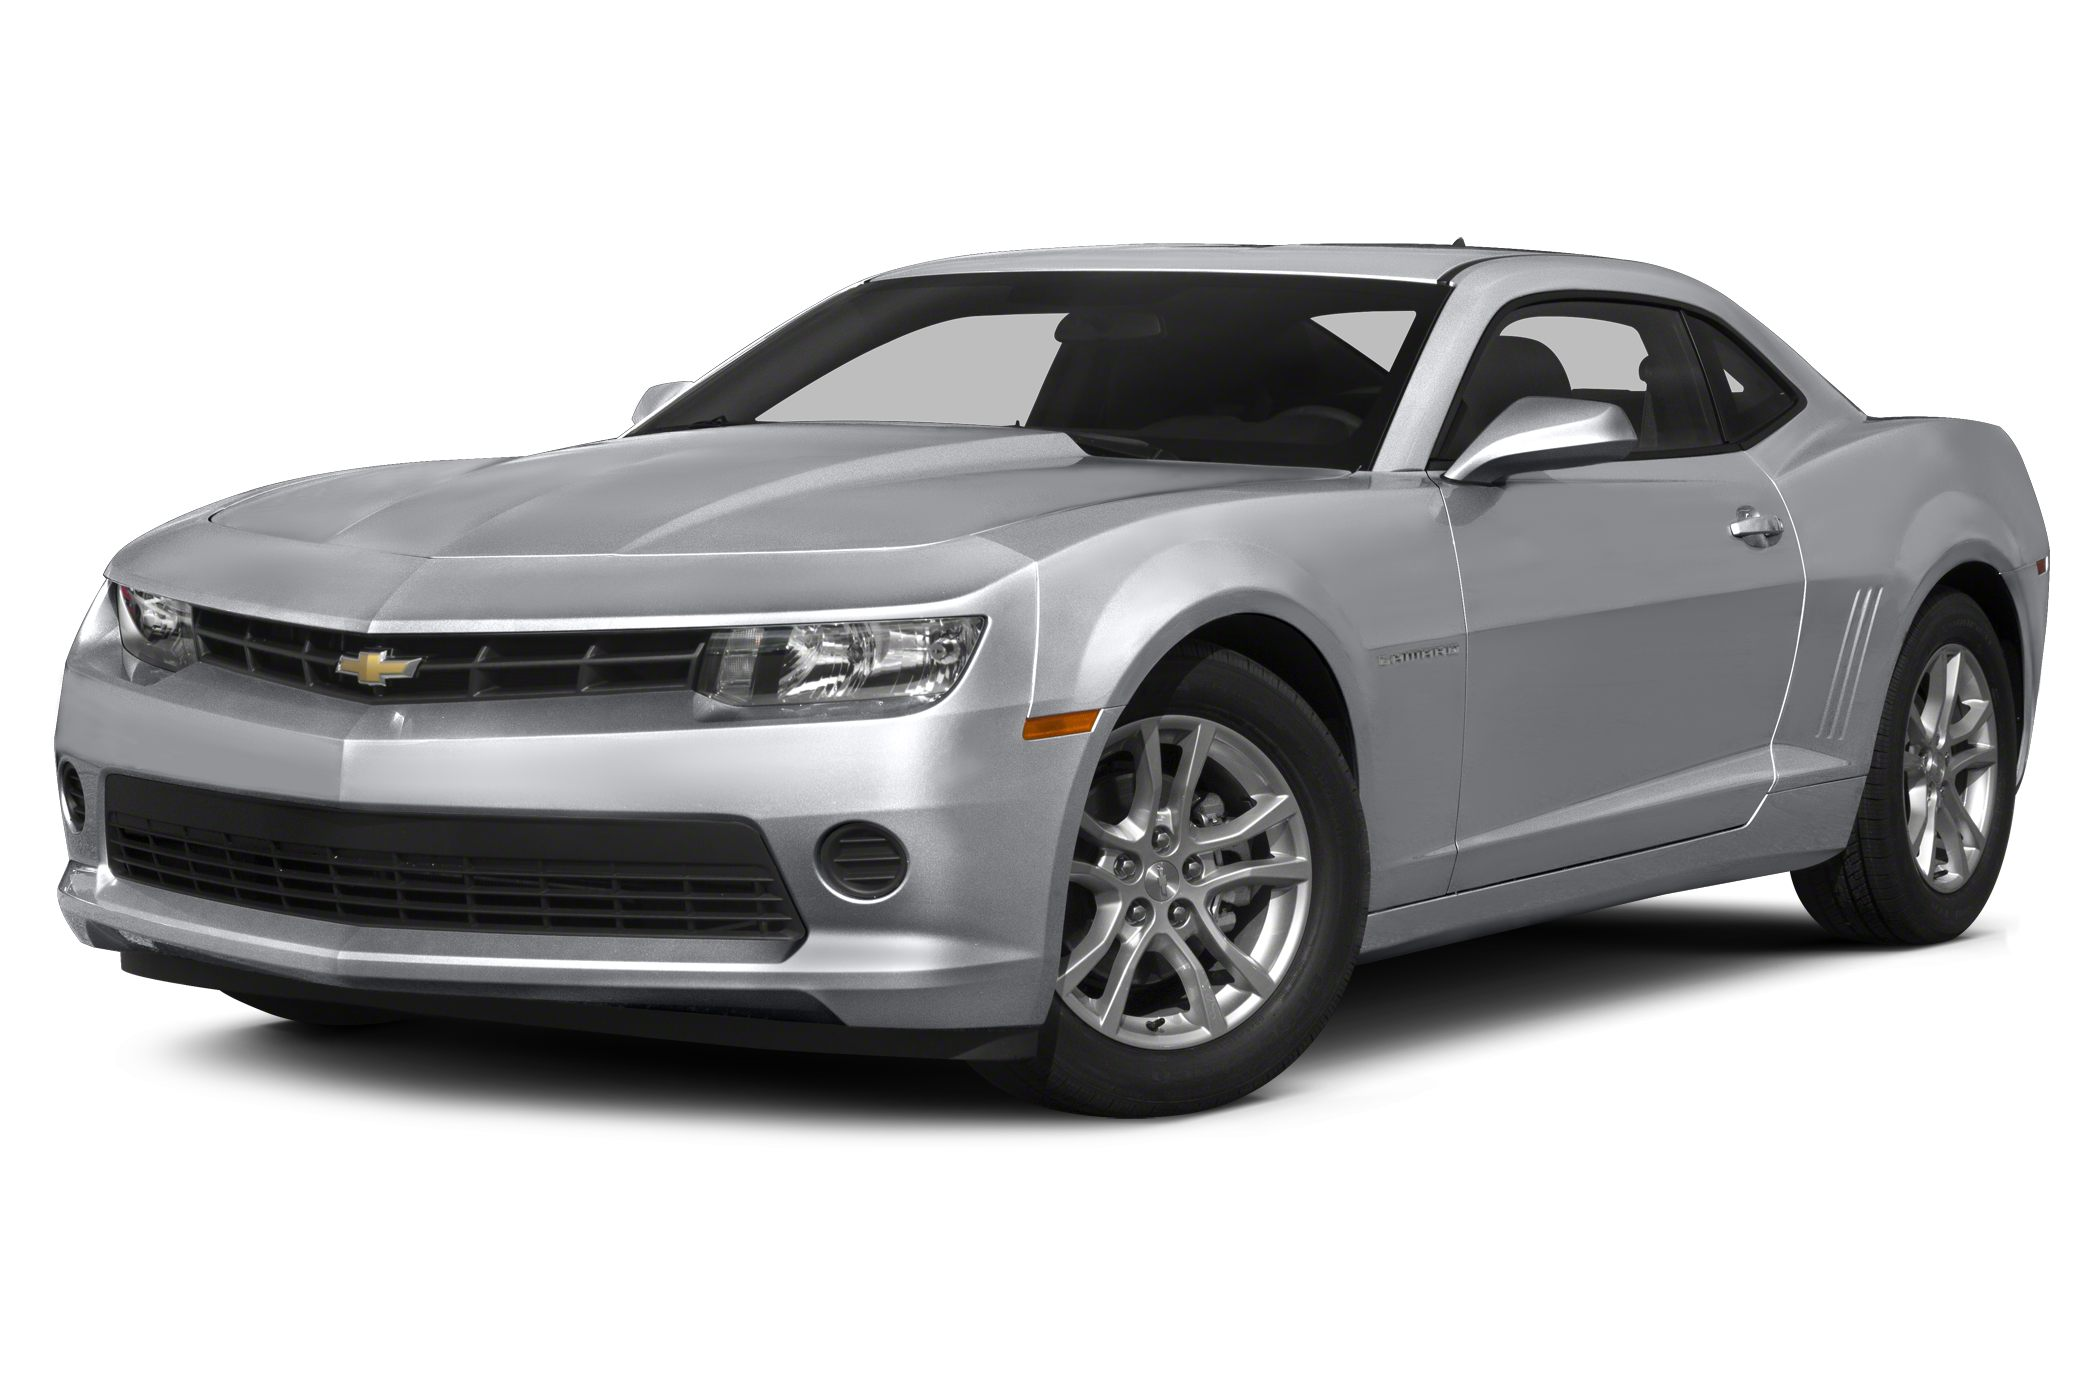 2015 Chevrolet Camaro 2LS Coupe for sale in Angleton for $26,745 with 0 miles.